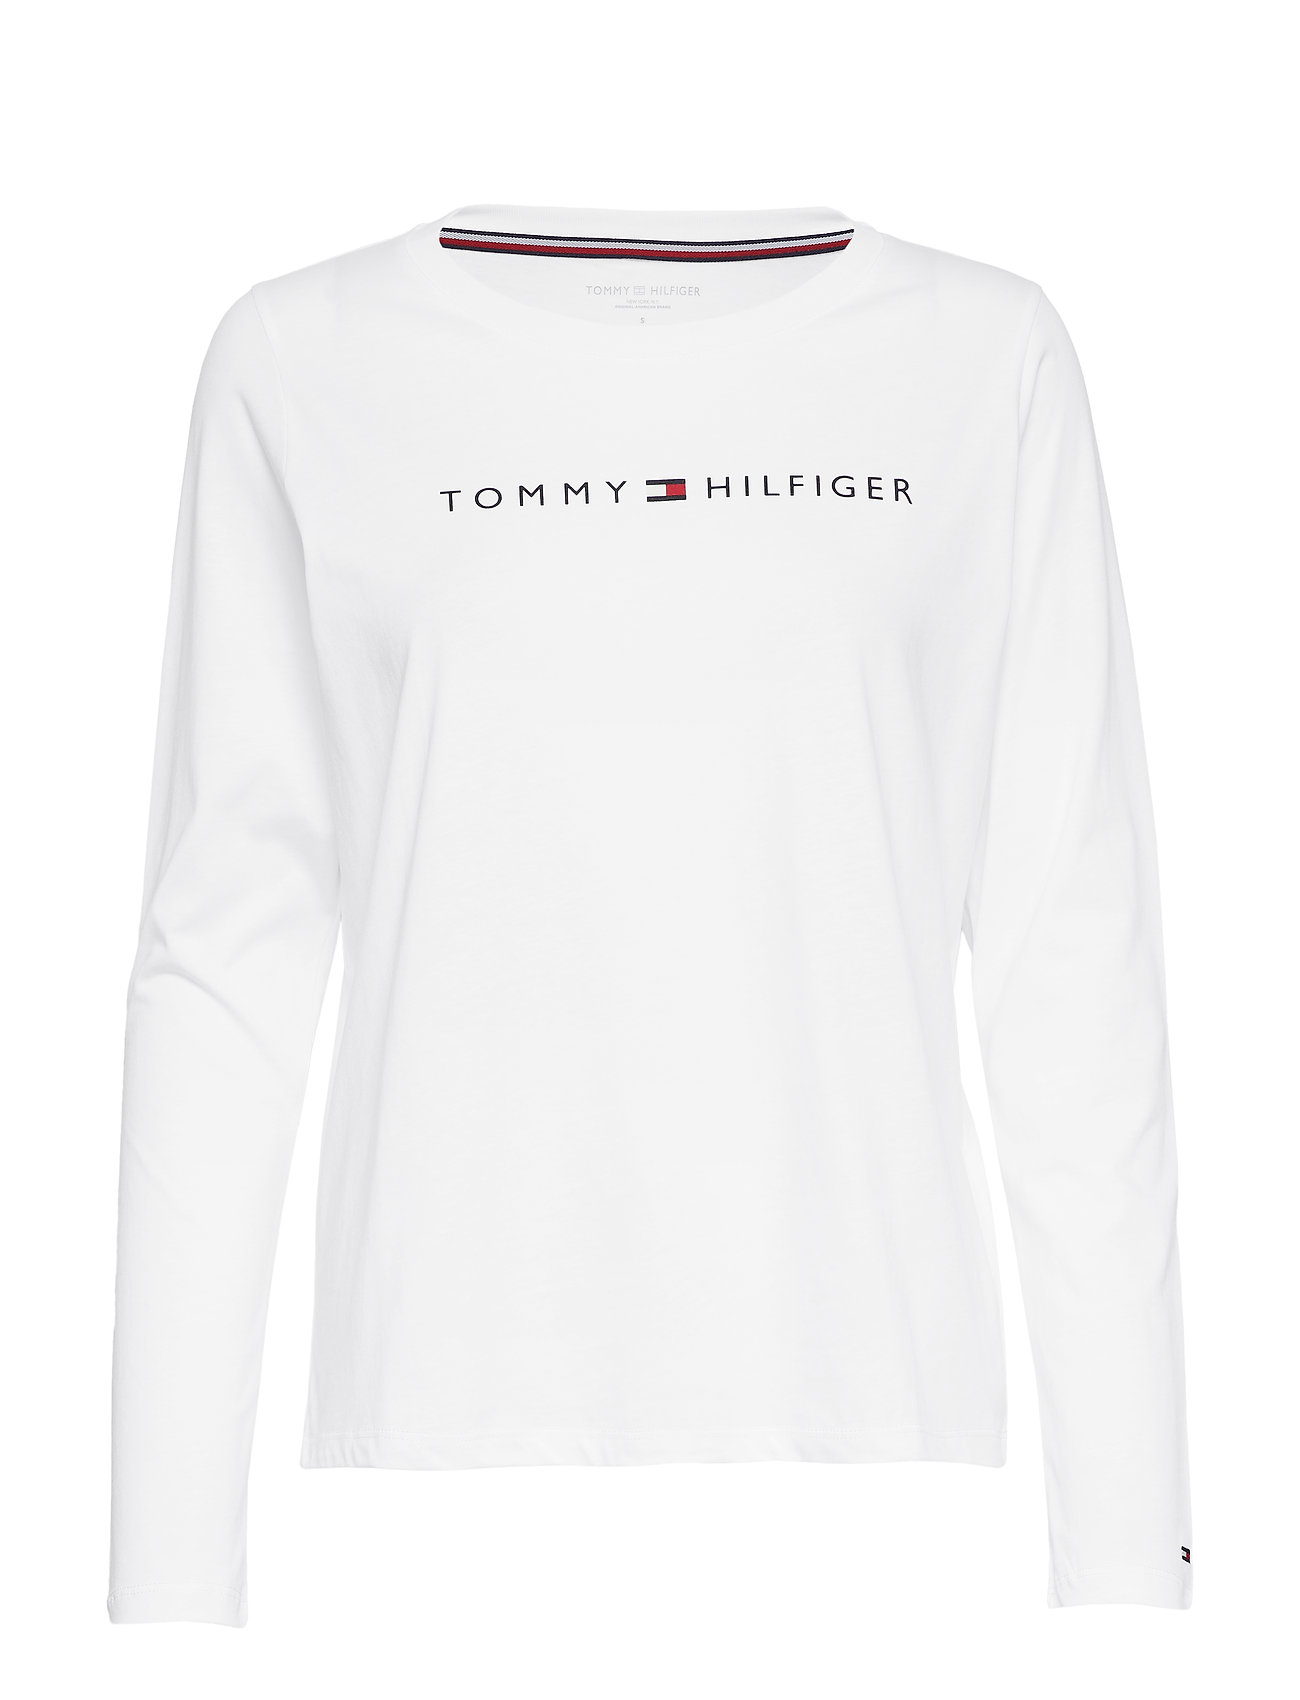 Tommy Hilfiger CN TEE LS LOGO - PVH CLASSIC WHITE